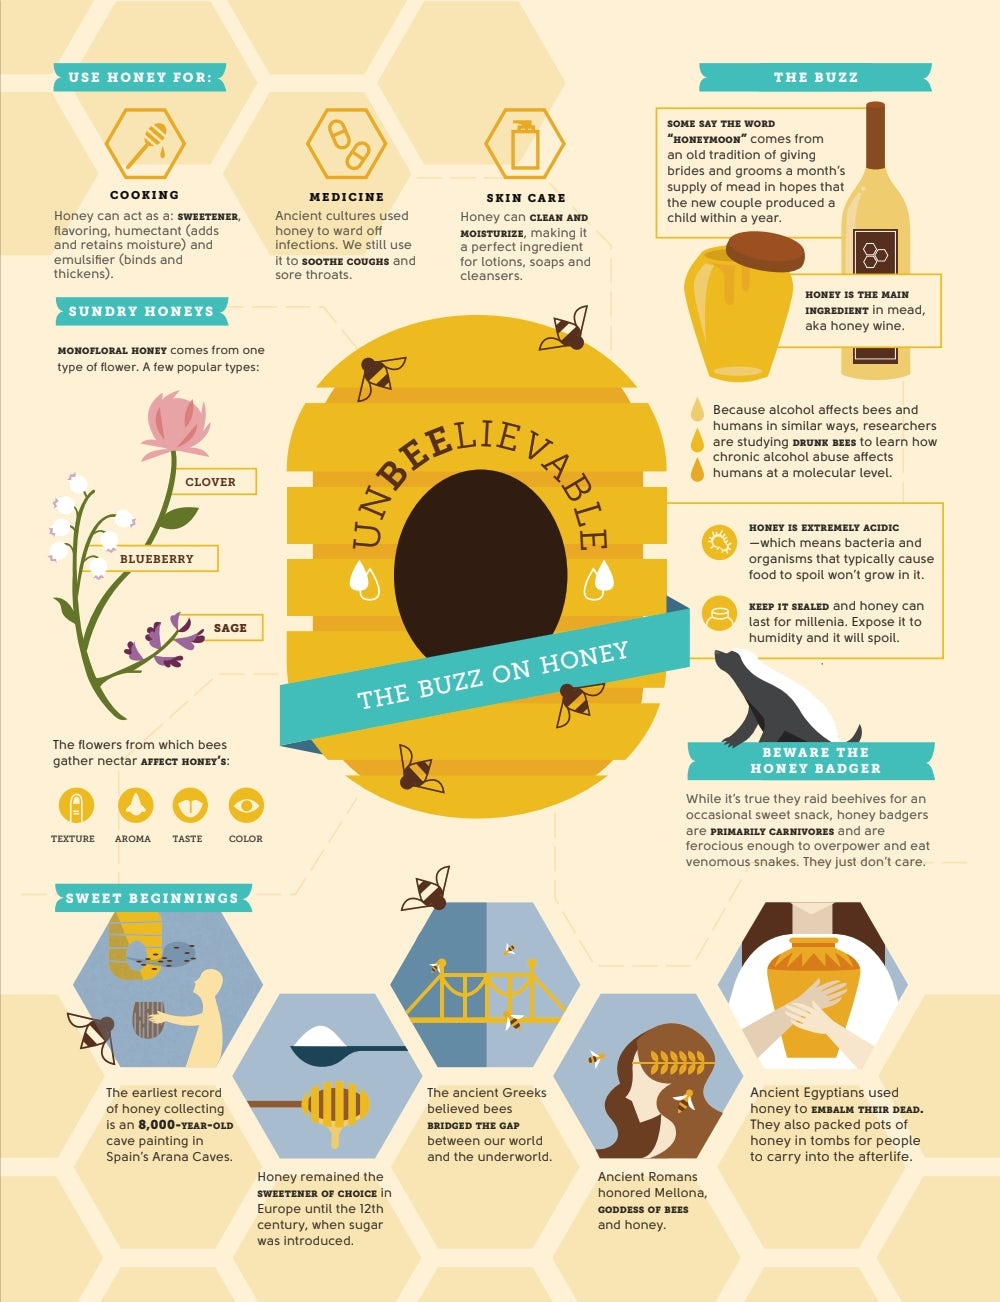 An infographic illustrating various facts about honey.